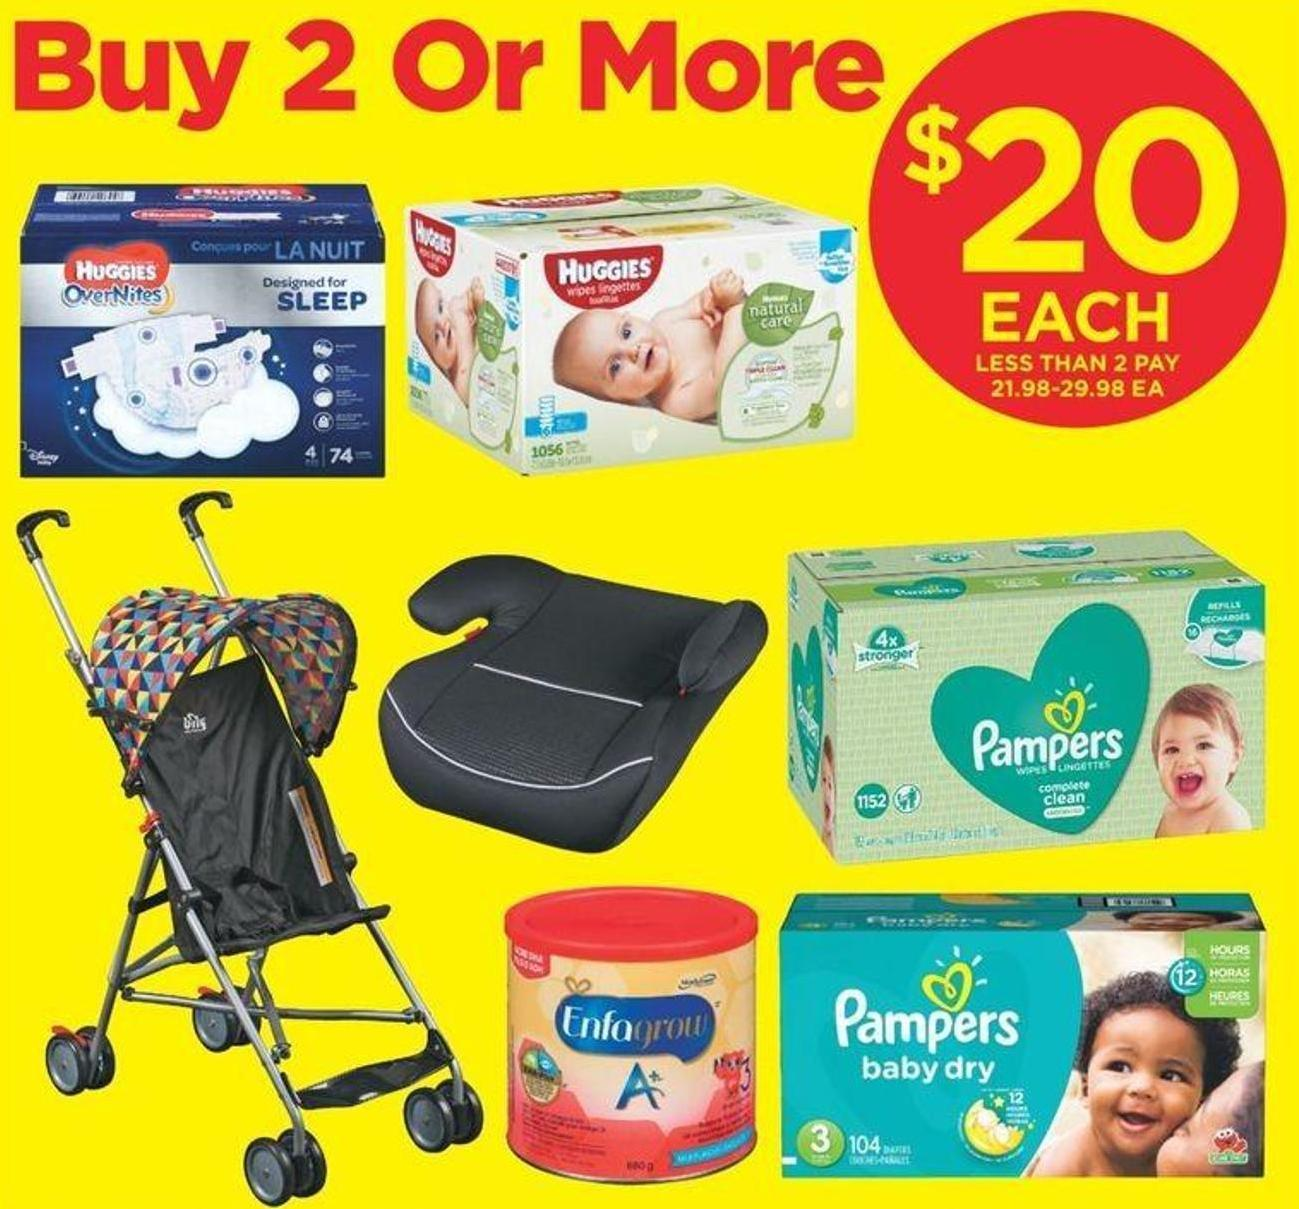 Enfagrow A+ Toddler Nutritional Supplement - 680 G - Bily Pattern Umbrella Stroller Or Low Back Booster Seat - Pampers Or Huggies 16x Wipes - 1024-1200's - Pampers And Huggies Super Big Pack Diapers - Sizes N-7